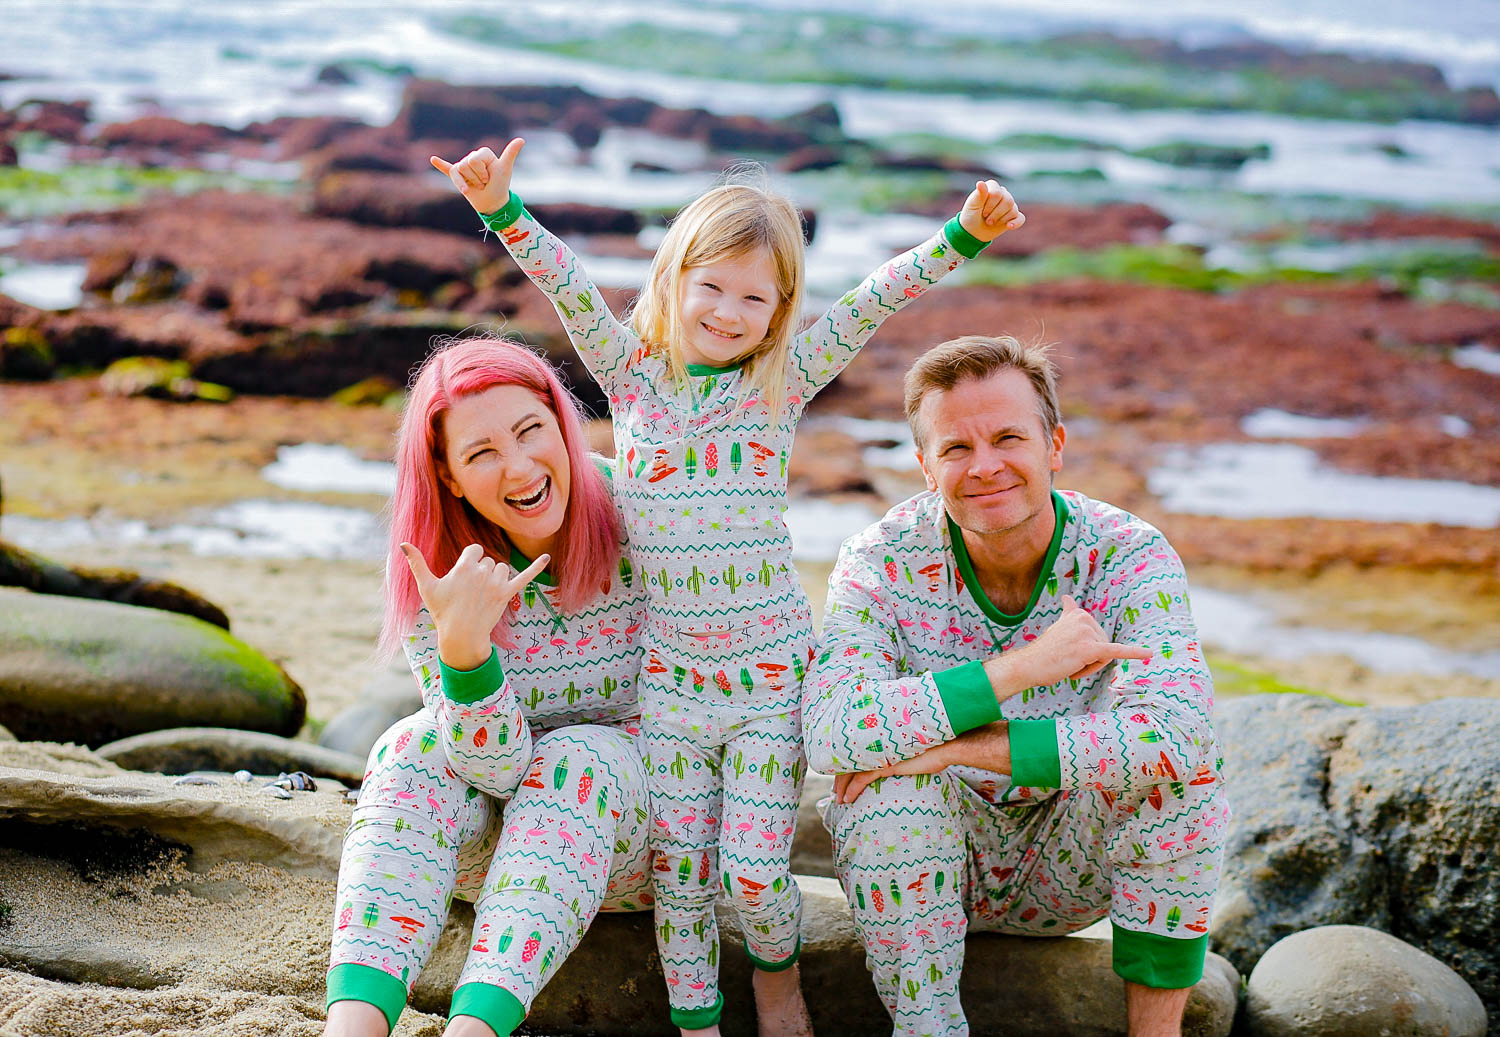 Matching family pajamas? They're a holiday must have!